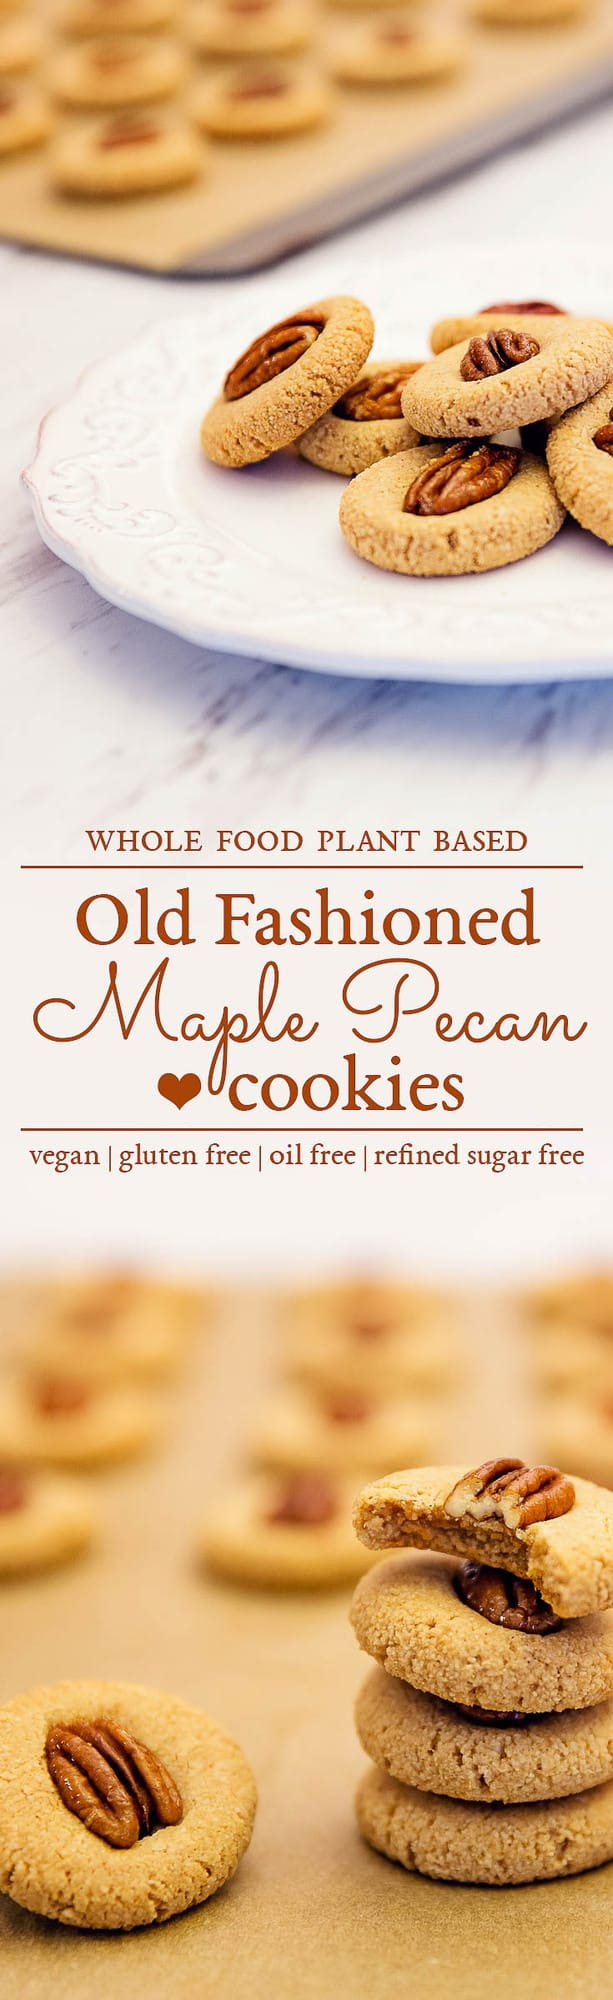 Old Fashioned Maple Pecan Cookies, Maple Pecan Cookie, Maple Cookies, Pecan Cookies, Cookies, whole food plant based, whole food, refined sugar free, maple, maple syrup, syrup, almond flour, almond, vegetarian, vegan, vegetarian cookies, vegan cookies, simple, easy, fast, 30 minutes, healthy, delicious, healthy cookies, oil free, gluten free, cookies, gluten free cookies, whole food plant based cookies, plant based cookies, cinnamon